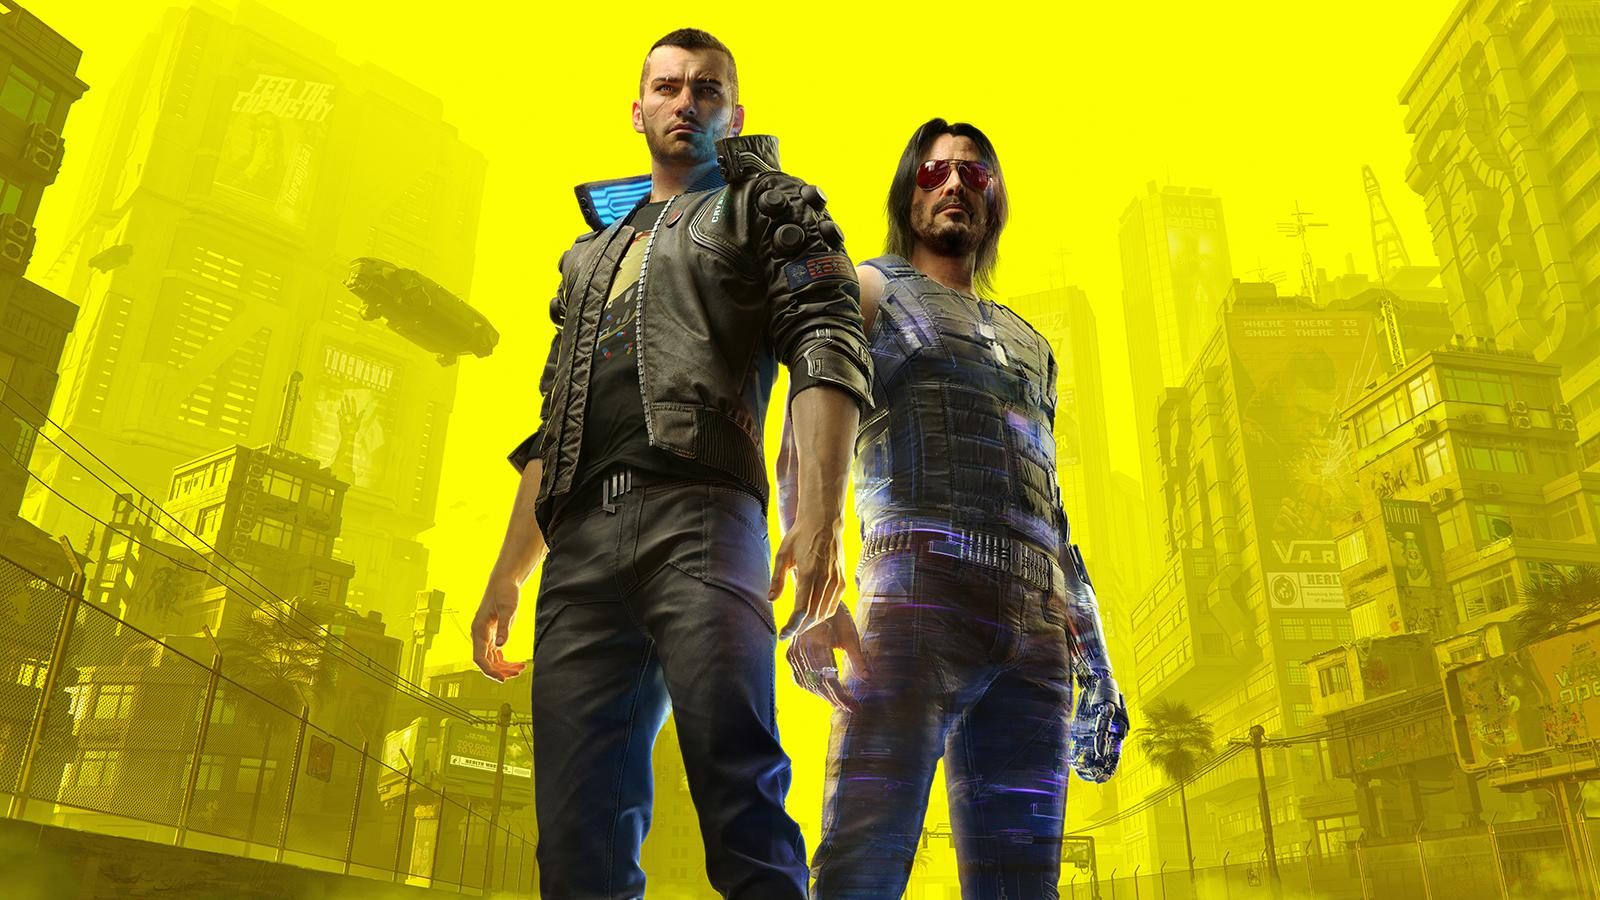 Characters Flawed: Cyberpunk 2077's V and Johnny, voiced by Keanu Reeves.